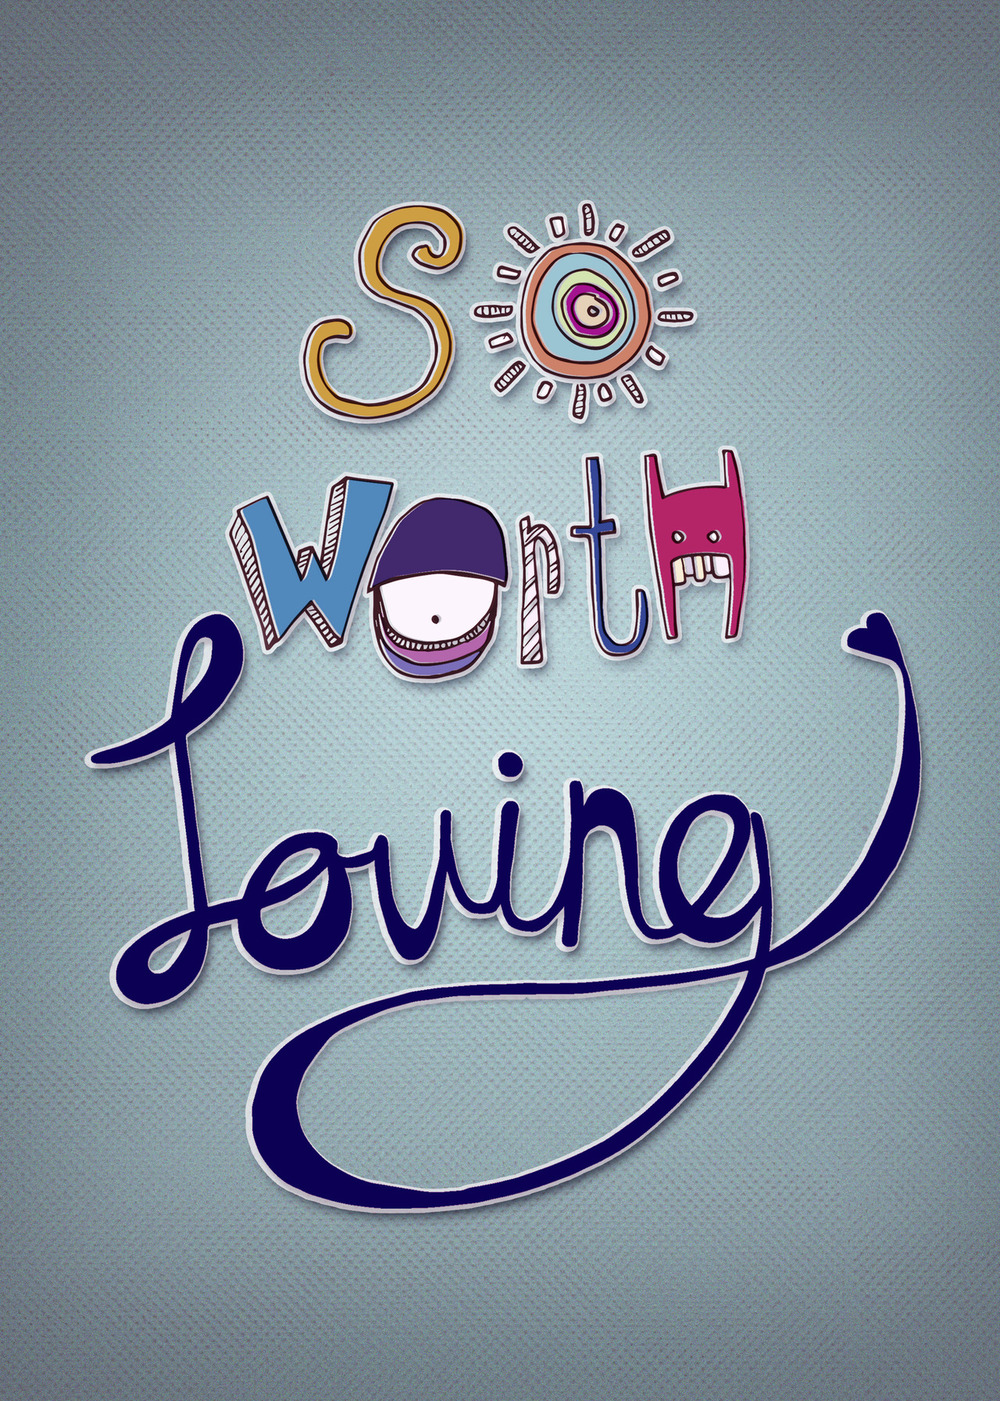 "trishgarcia :     I've been following  So Worth Loving  for quite some time now and love what they do. Inspired by there mission I wanted to show my appreciation with a SWL illustration. Hope you enjoy!  "" So Worth Loving is a community of people dedicated to spreading that message and helping empower people to pursue their dreams."" - SWL   # SoWorthLoving      # SWLFam"